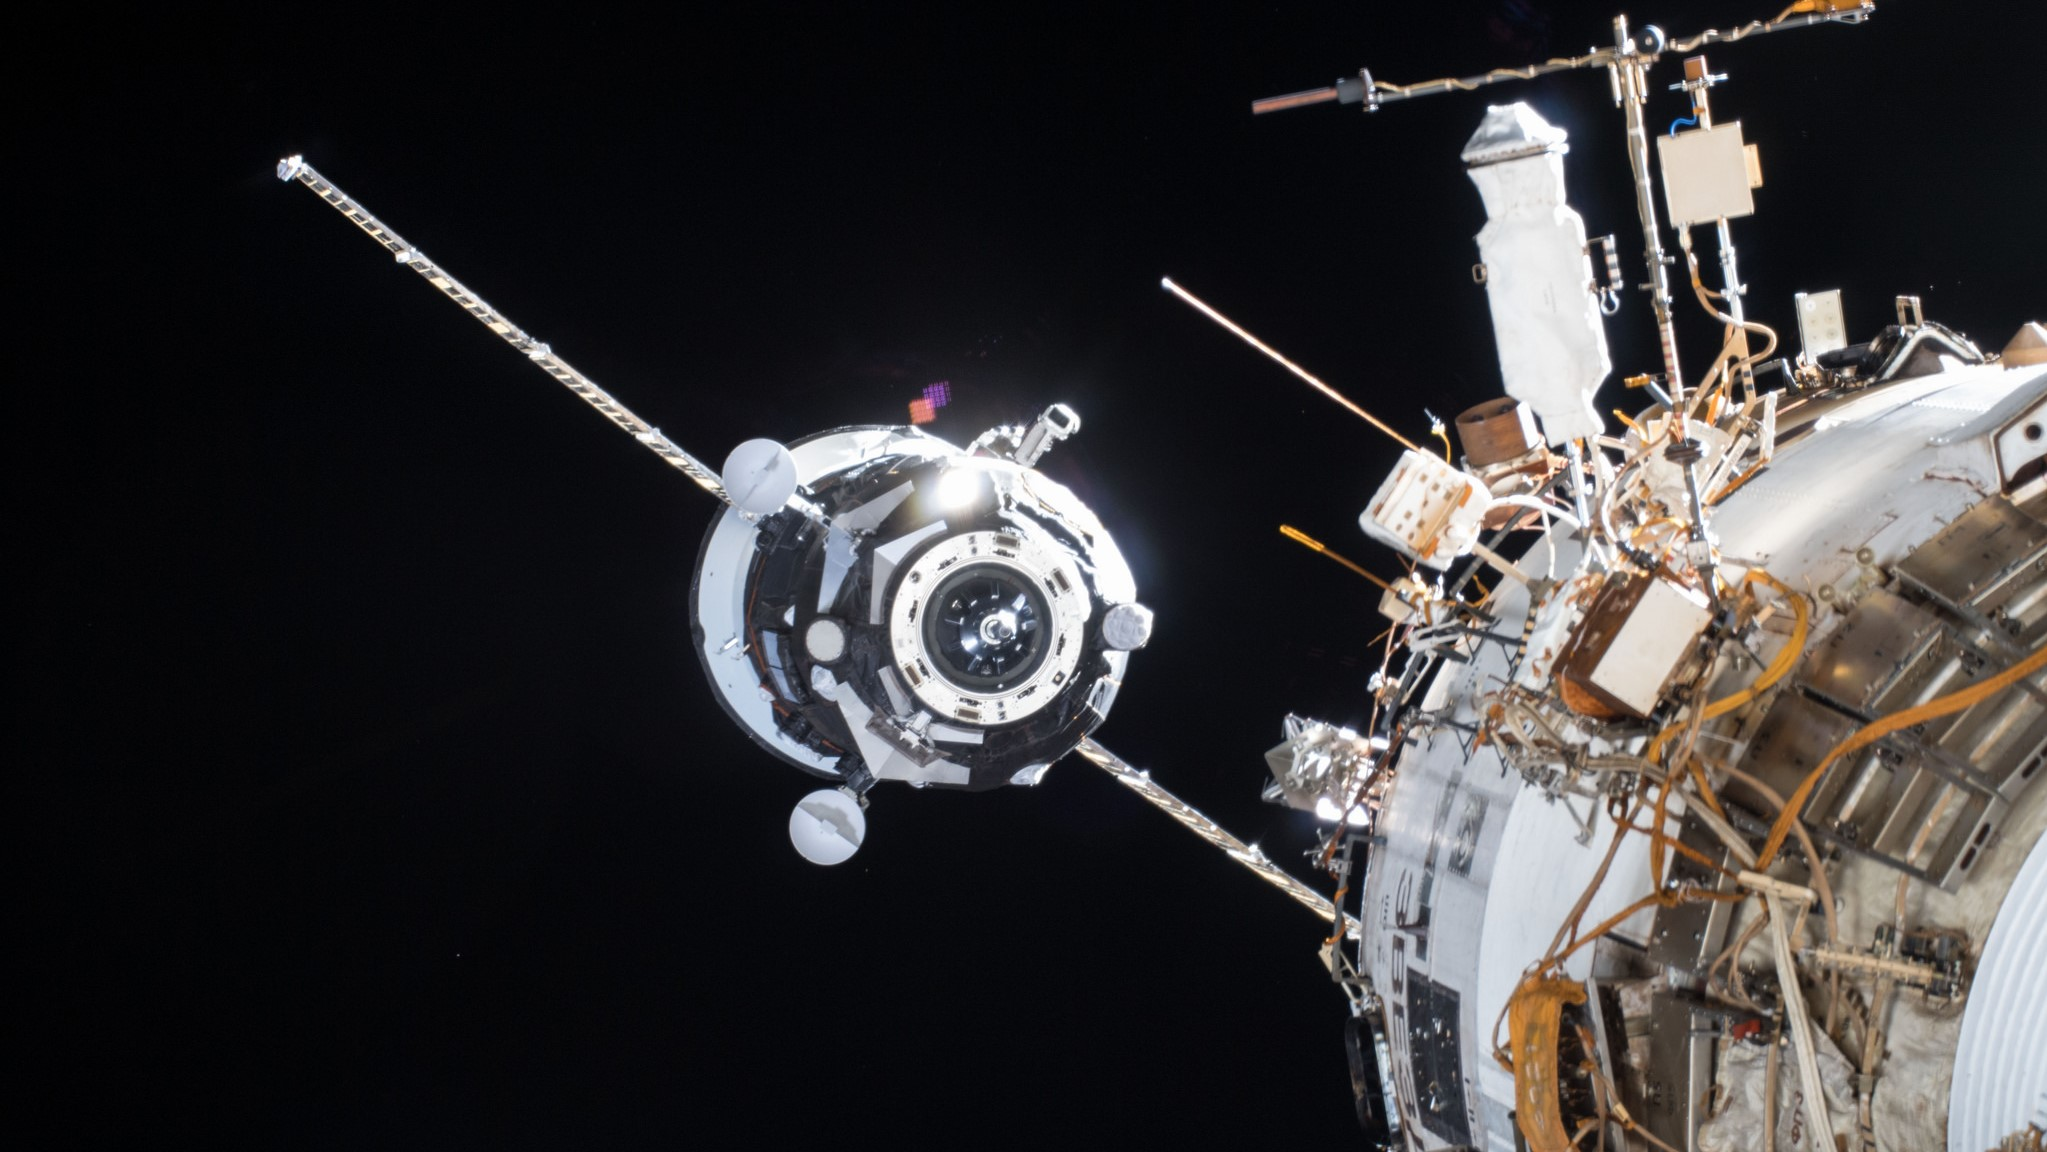 Progress MS-08 arrives at the International Space Station on Feb. 15, 2018, docking with the outpost's Zvezda service module. The spacecraft undocked Aug. 22, 2018. Photo Credit: NASA